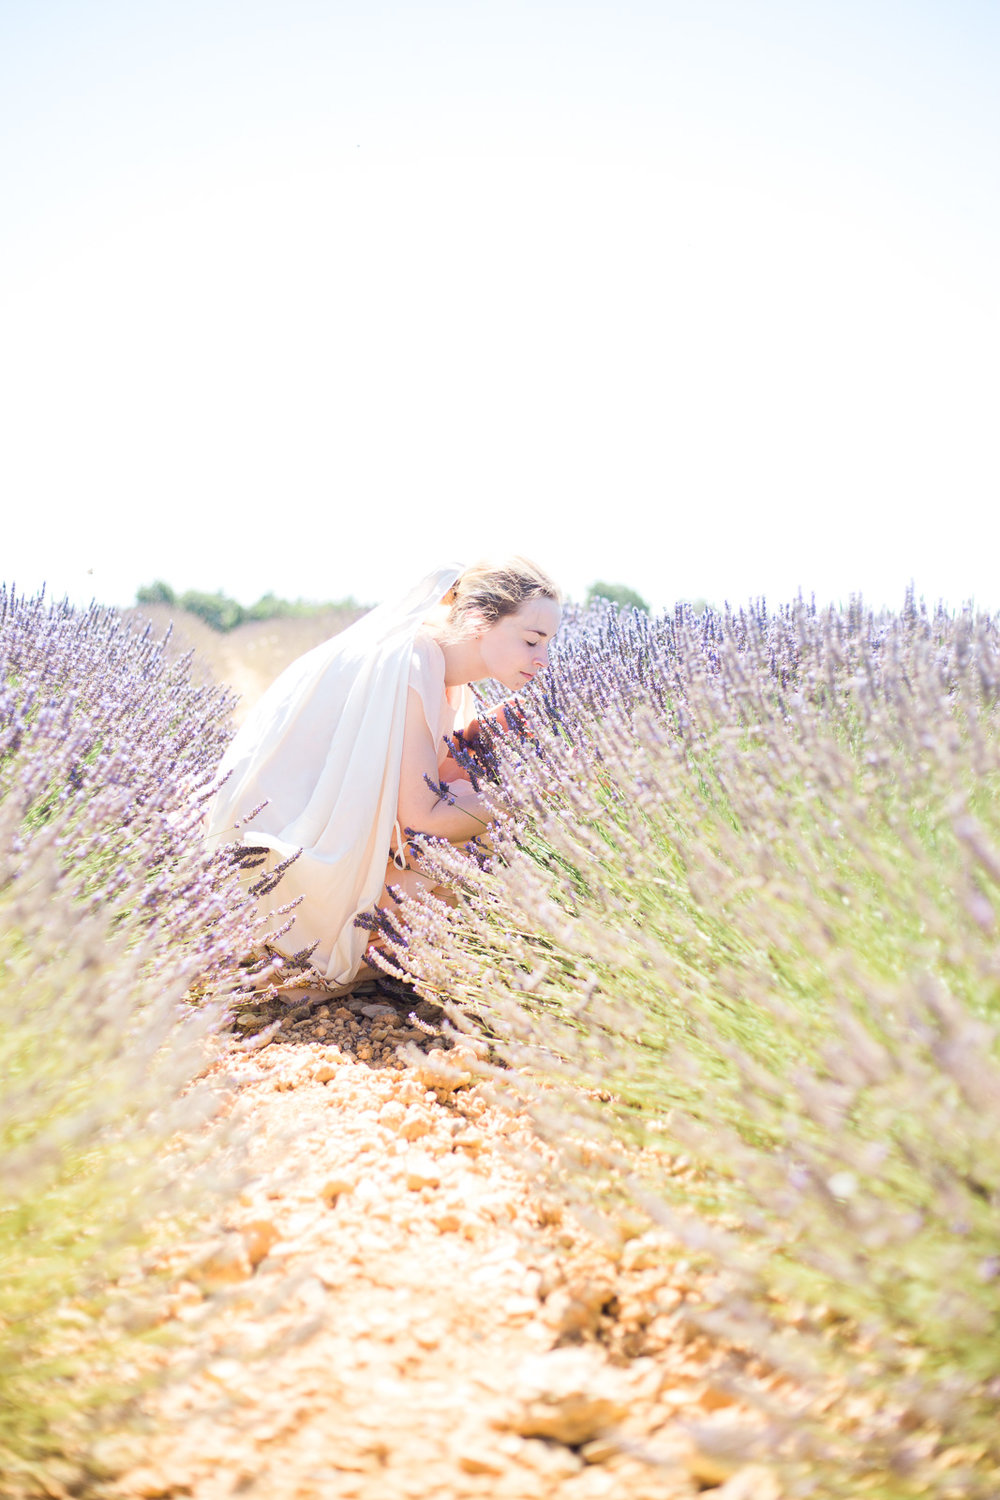 Wedding Photographer, Lavender Fields, Southern France, Matt Erickson Photography, Destination Wedding Photographer, France, Provence